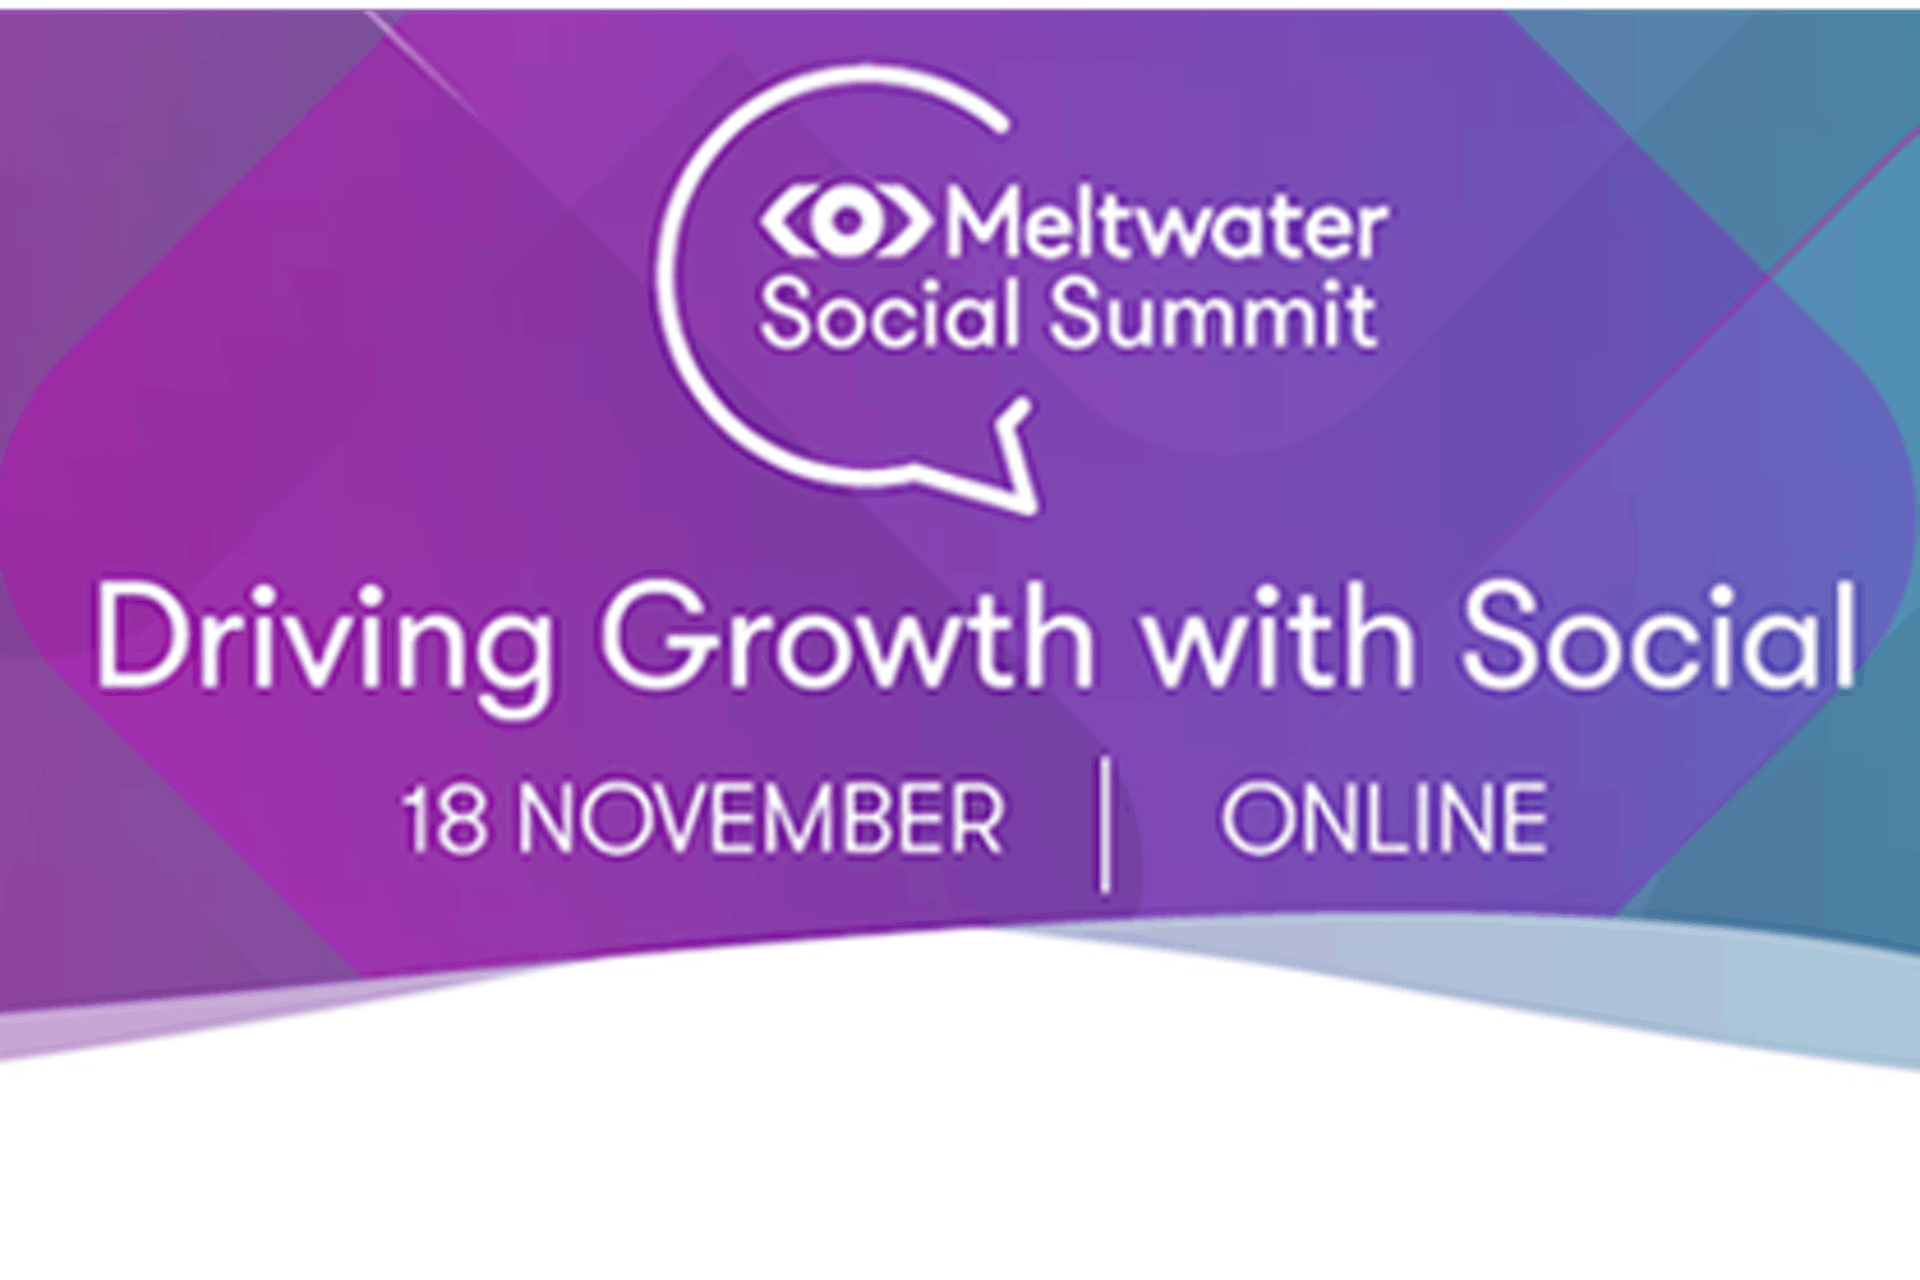 meltwater social summit 2021